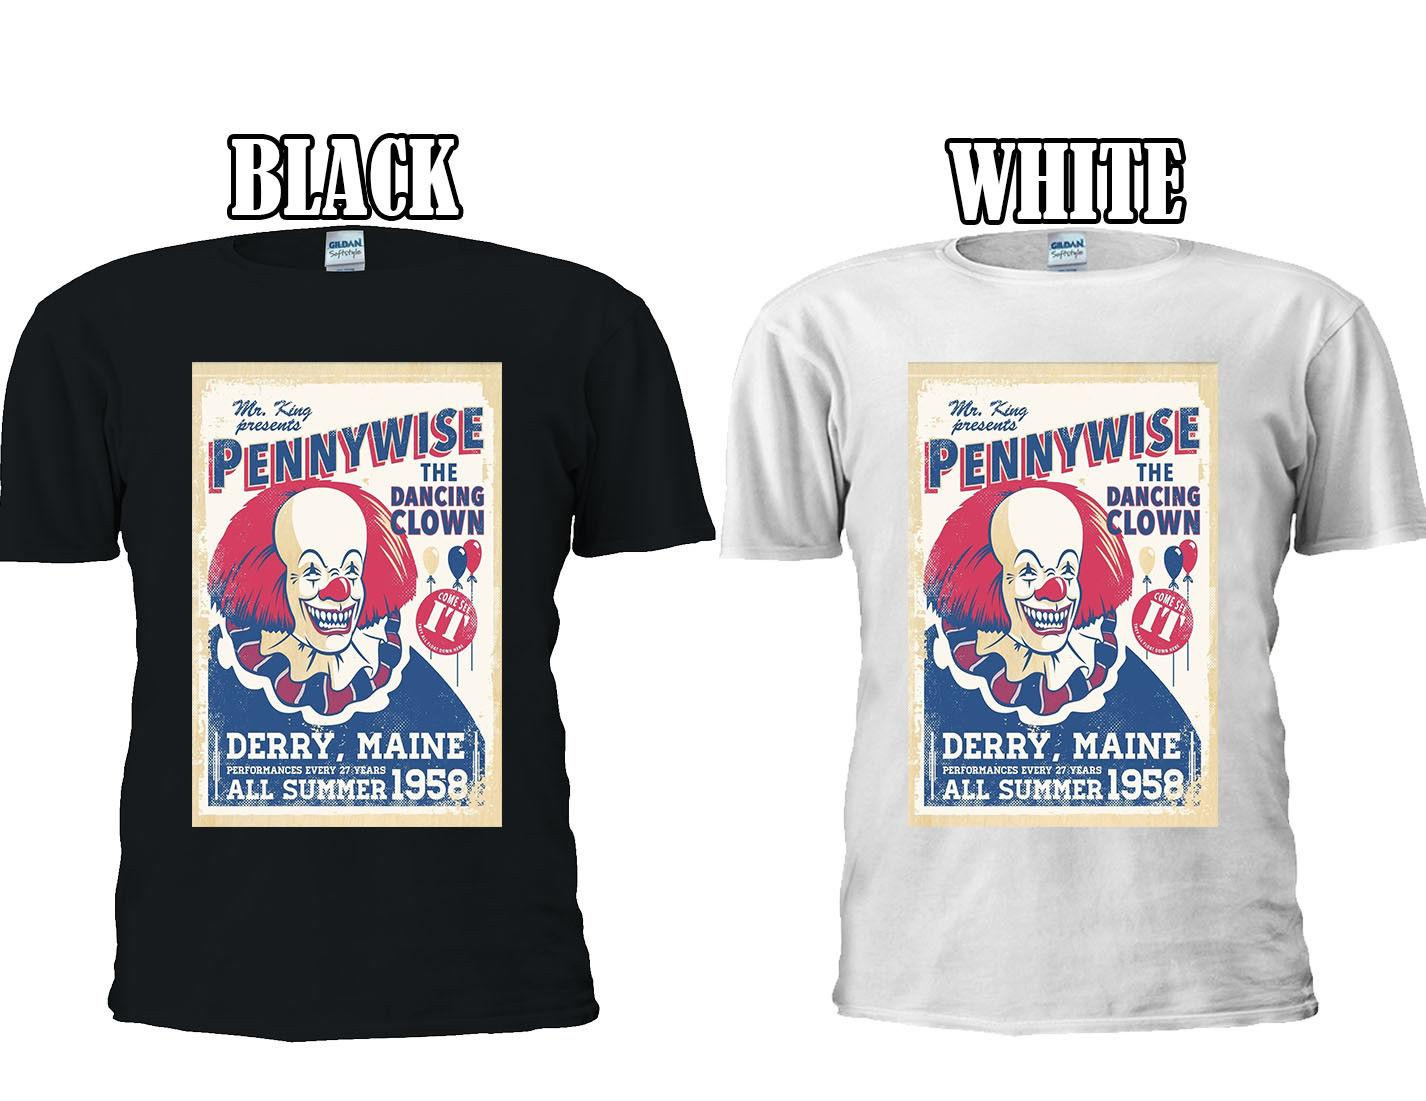 0a951f1d5 Pennywise The Clown Stephen King T Shirt Baseball Vest Men Women Unisex  2628 Awesome Shirts Cool T Shirts For Men From Funnytees, $15.72| DHgate.Com